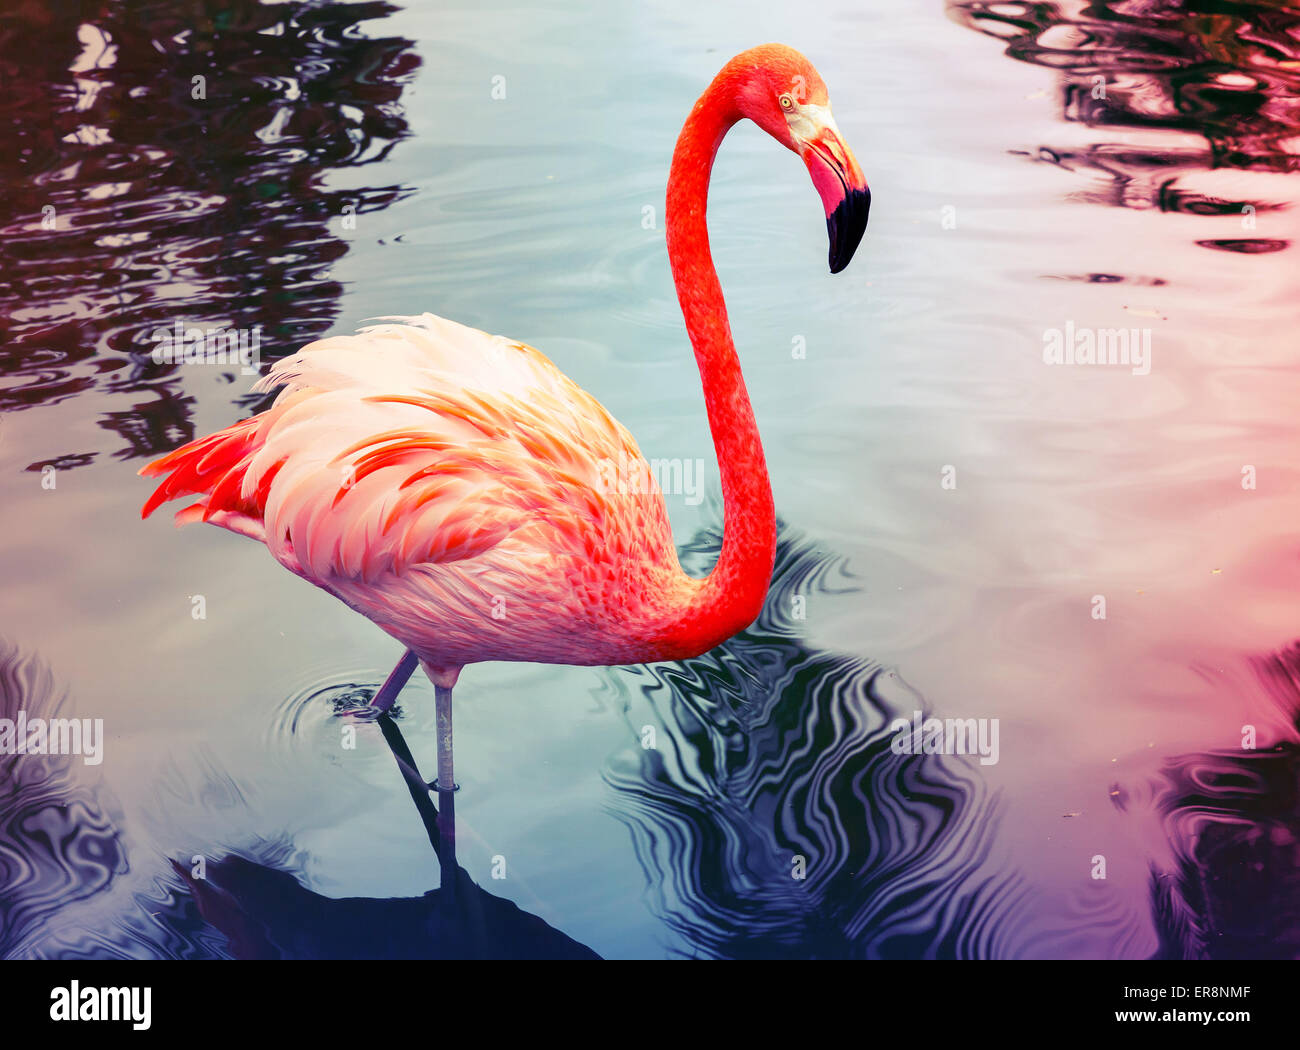 Pink flamingo walks in the water with reflections, stylized photo with colorful tonal correction filter, instagram - Stock Image